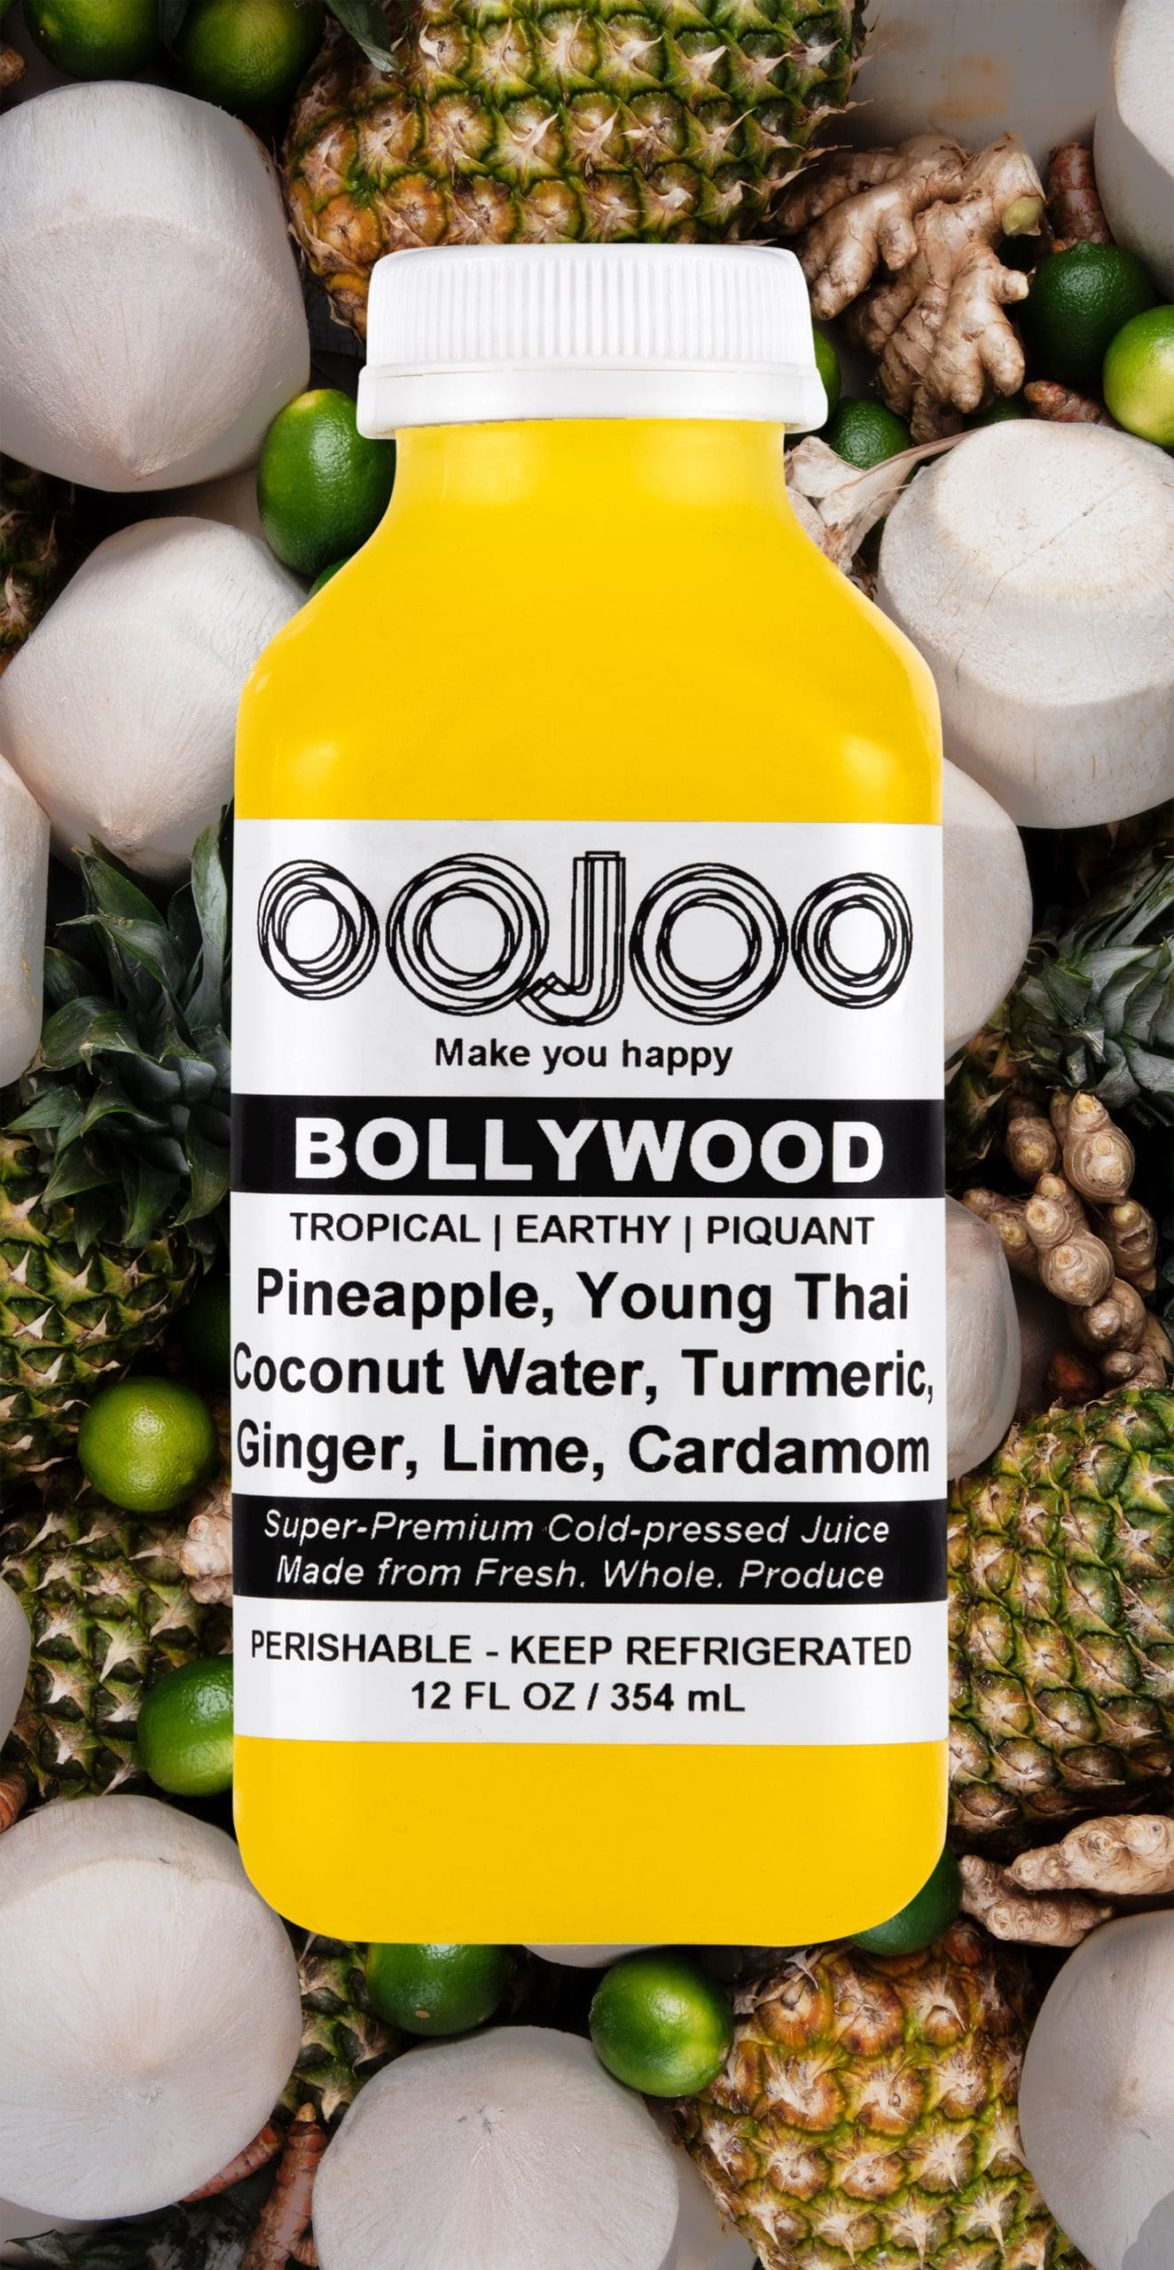 Bollywood shown with its ingredients.